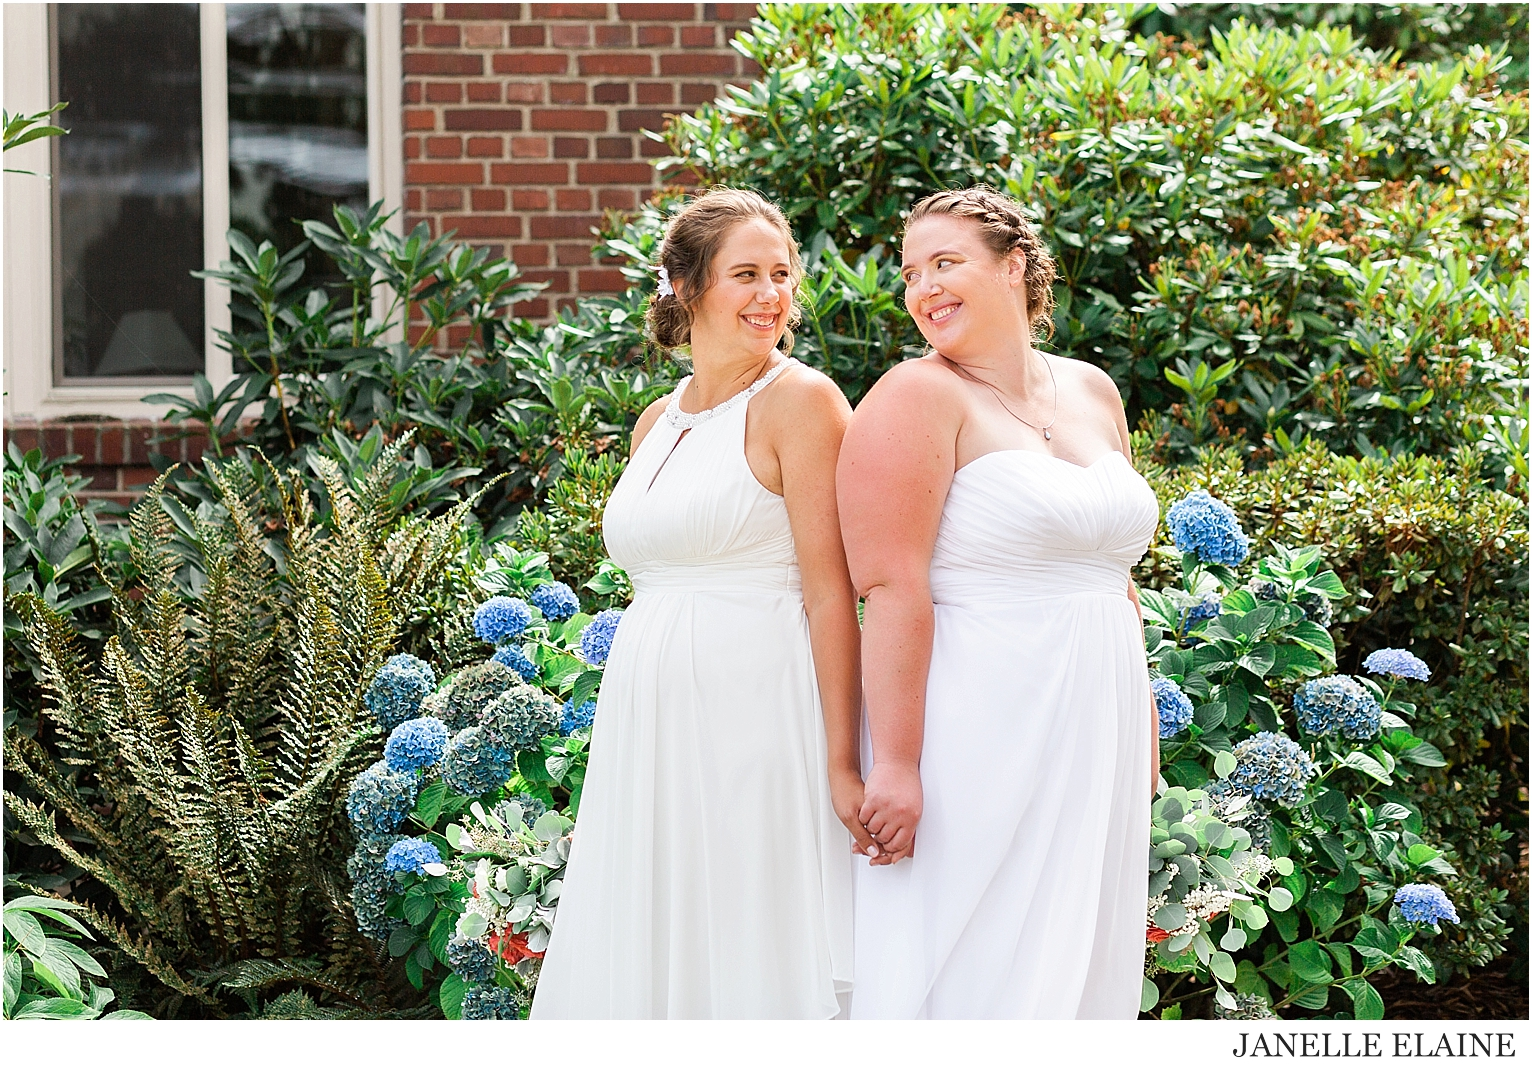 liz and christina lanning-first look and portraits-luther burbank park-janelle elaine photography-173.jpg